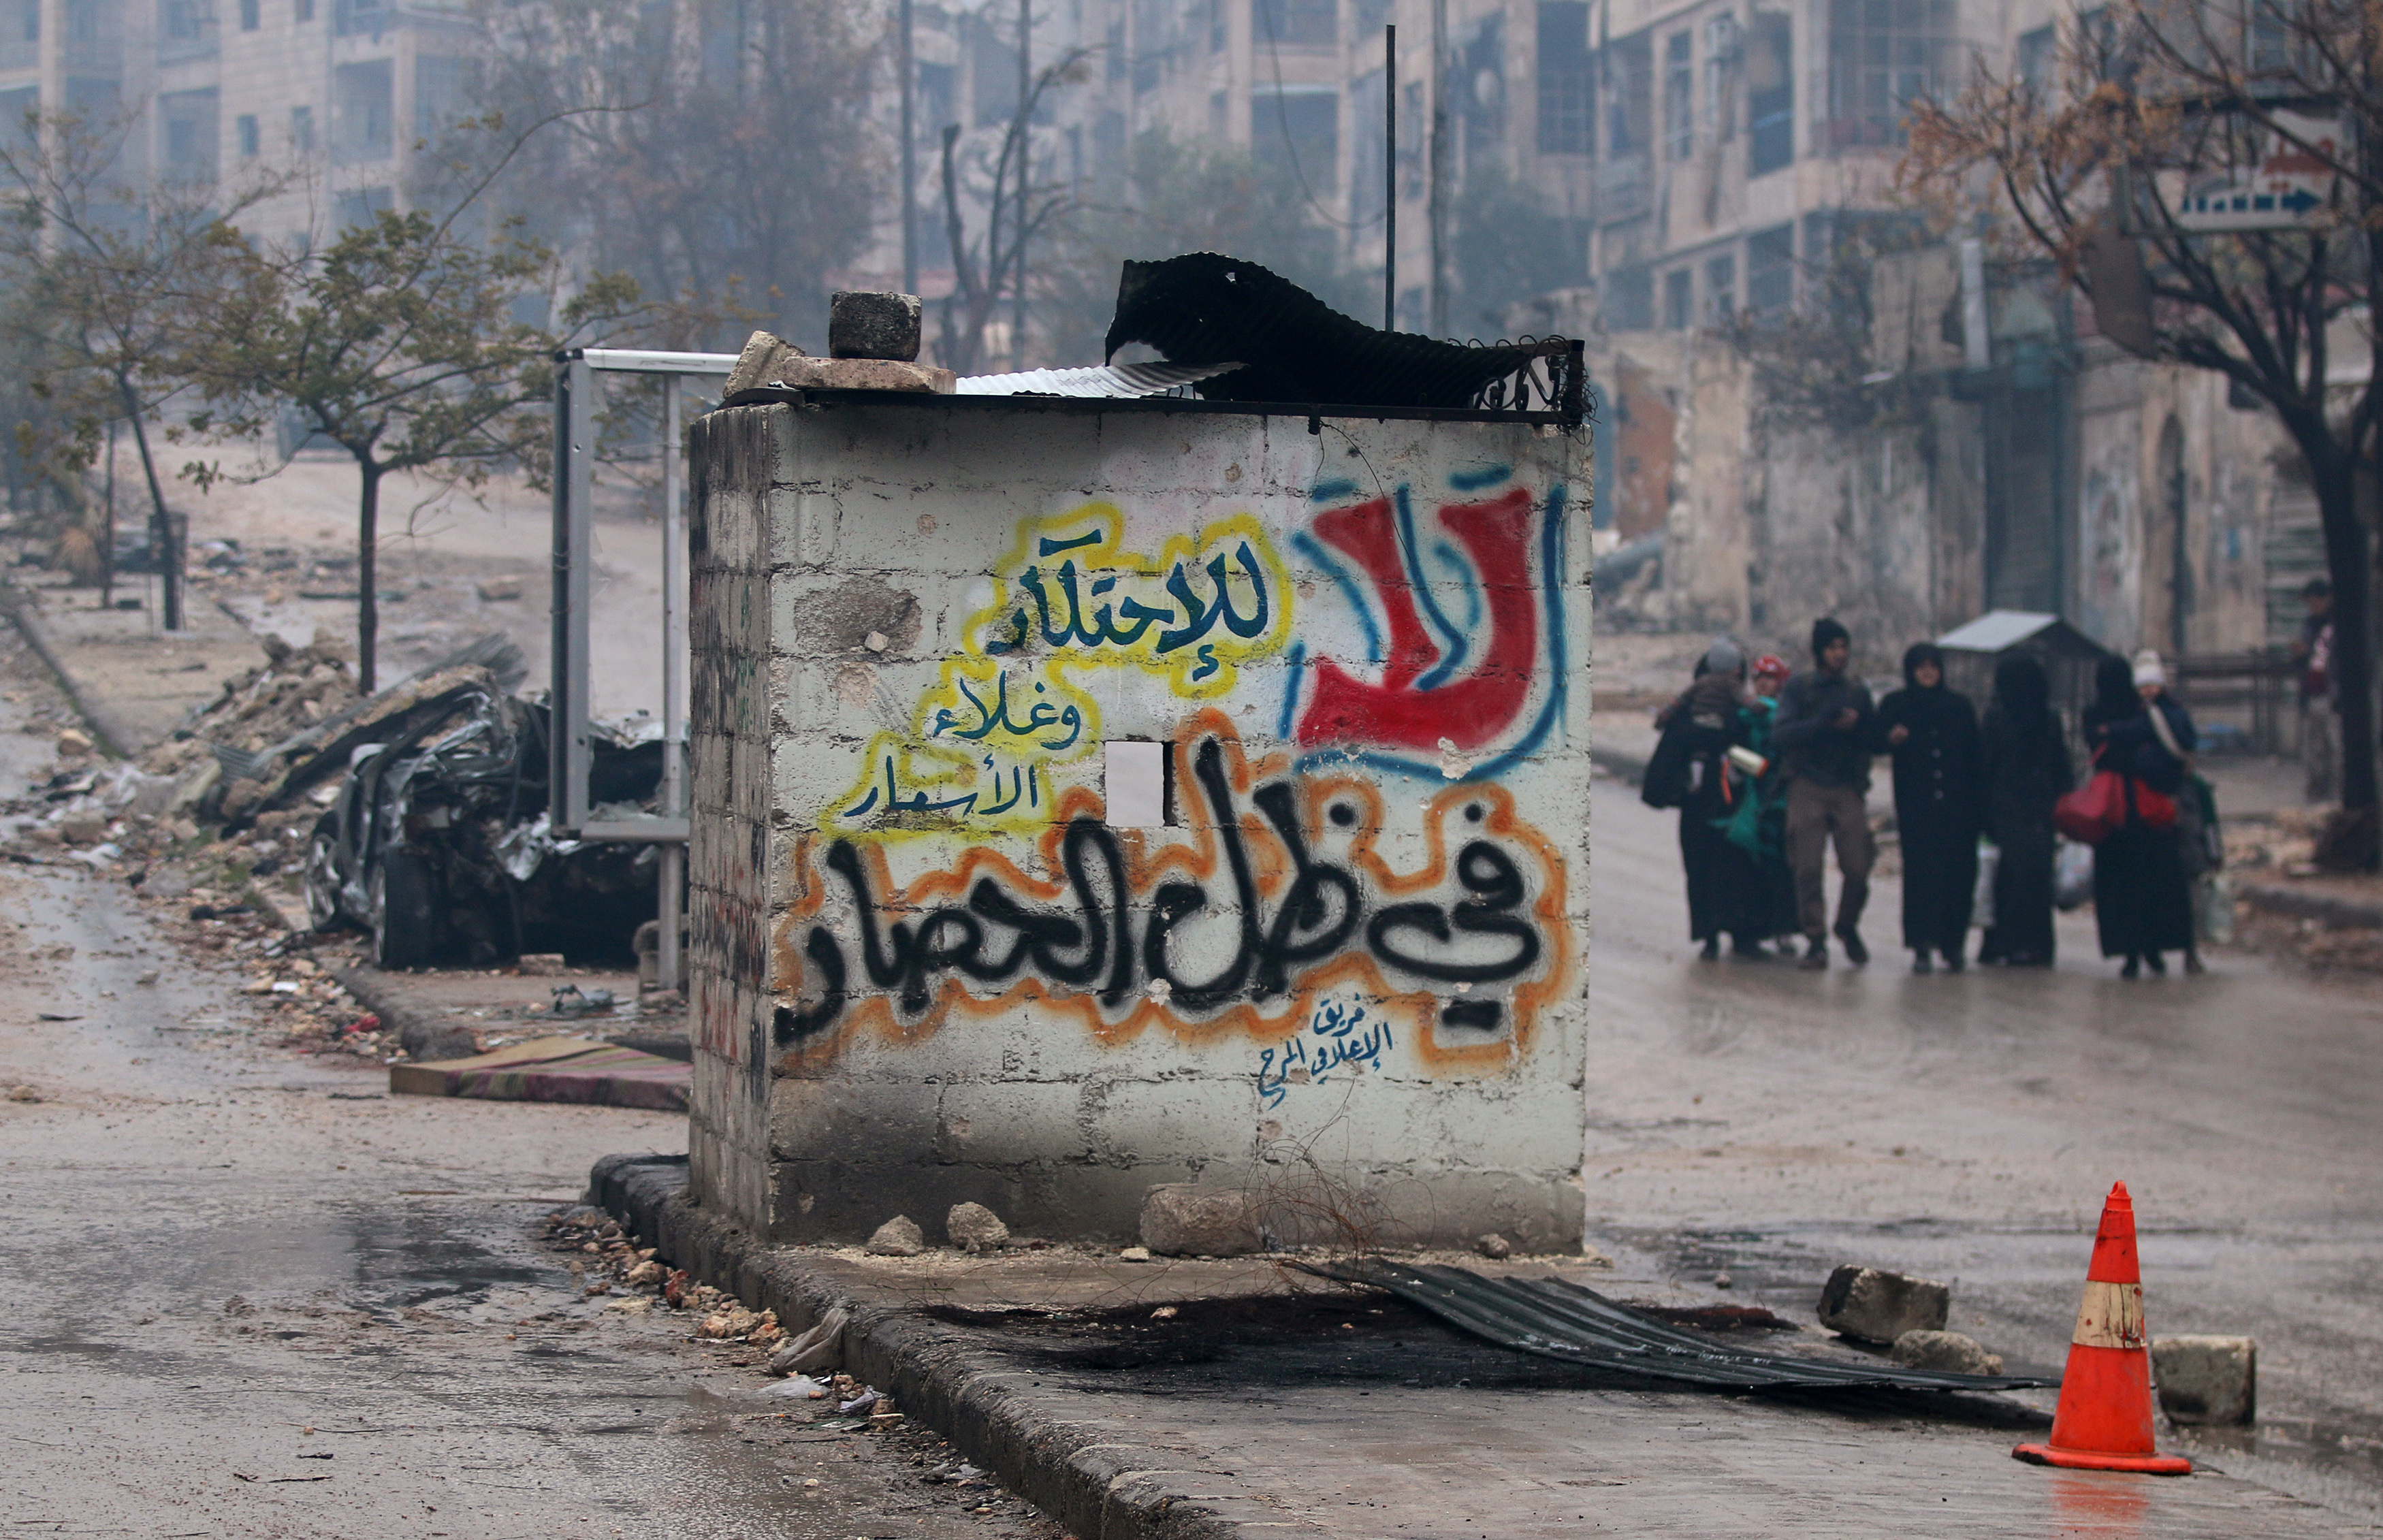 """People carry their belongings as they flee deeper into the remaining rebel-held areas of Aleppo, Syria, Dec. 13, 2016. The Arabic words read, """"No to monopolizing commodities and raising prices under the siege."""""""